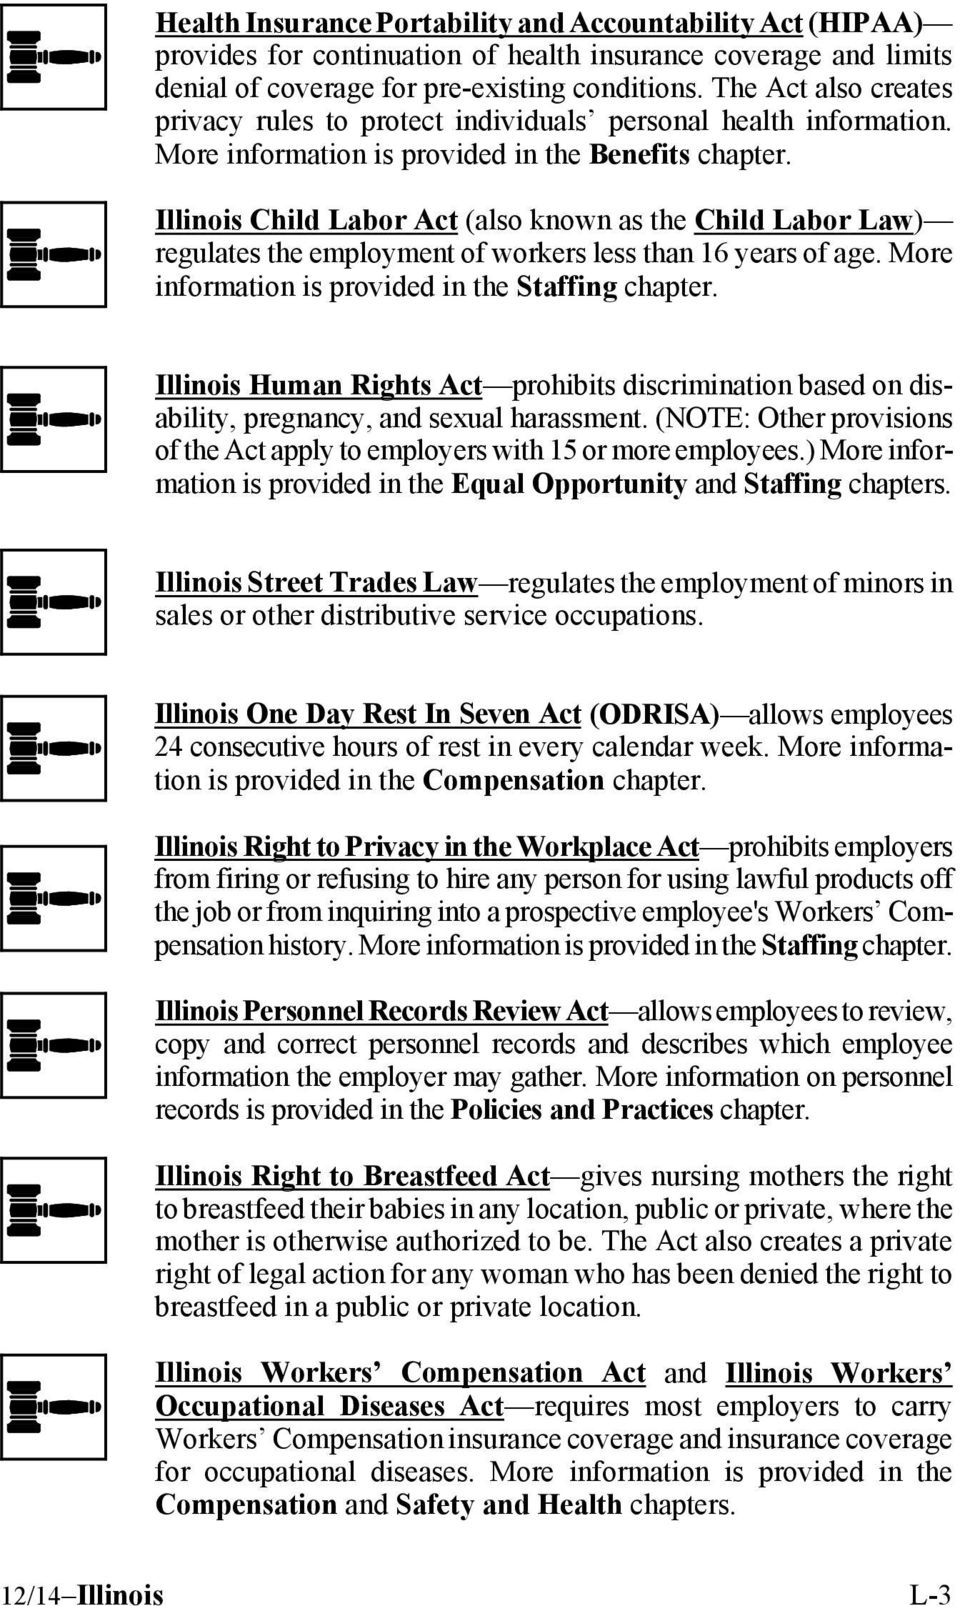 Illinois Child Labor Act (also known as the Child Labor Law) regulates the employment of workers less than 16 years of age. More information is provided in the Staffing chapter.